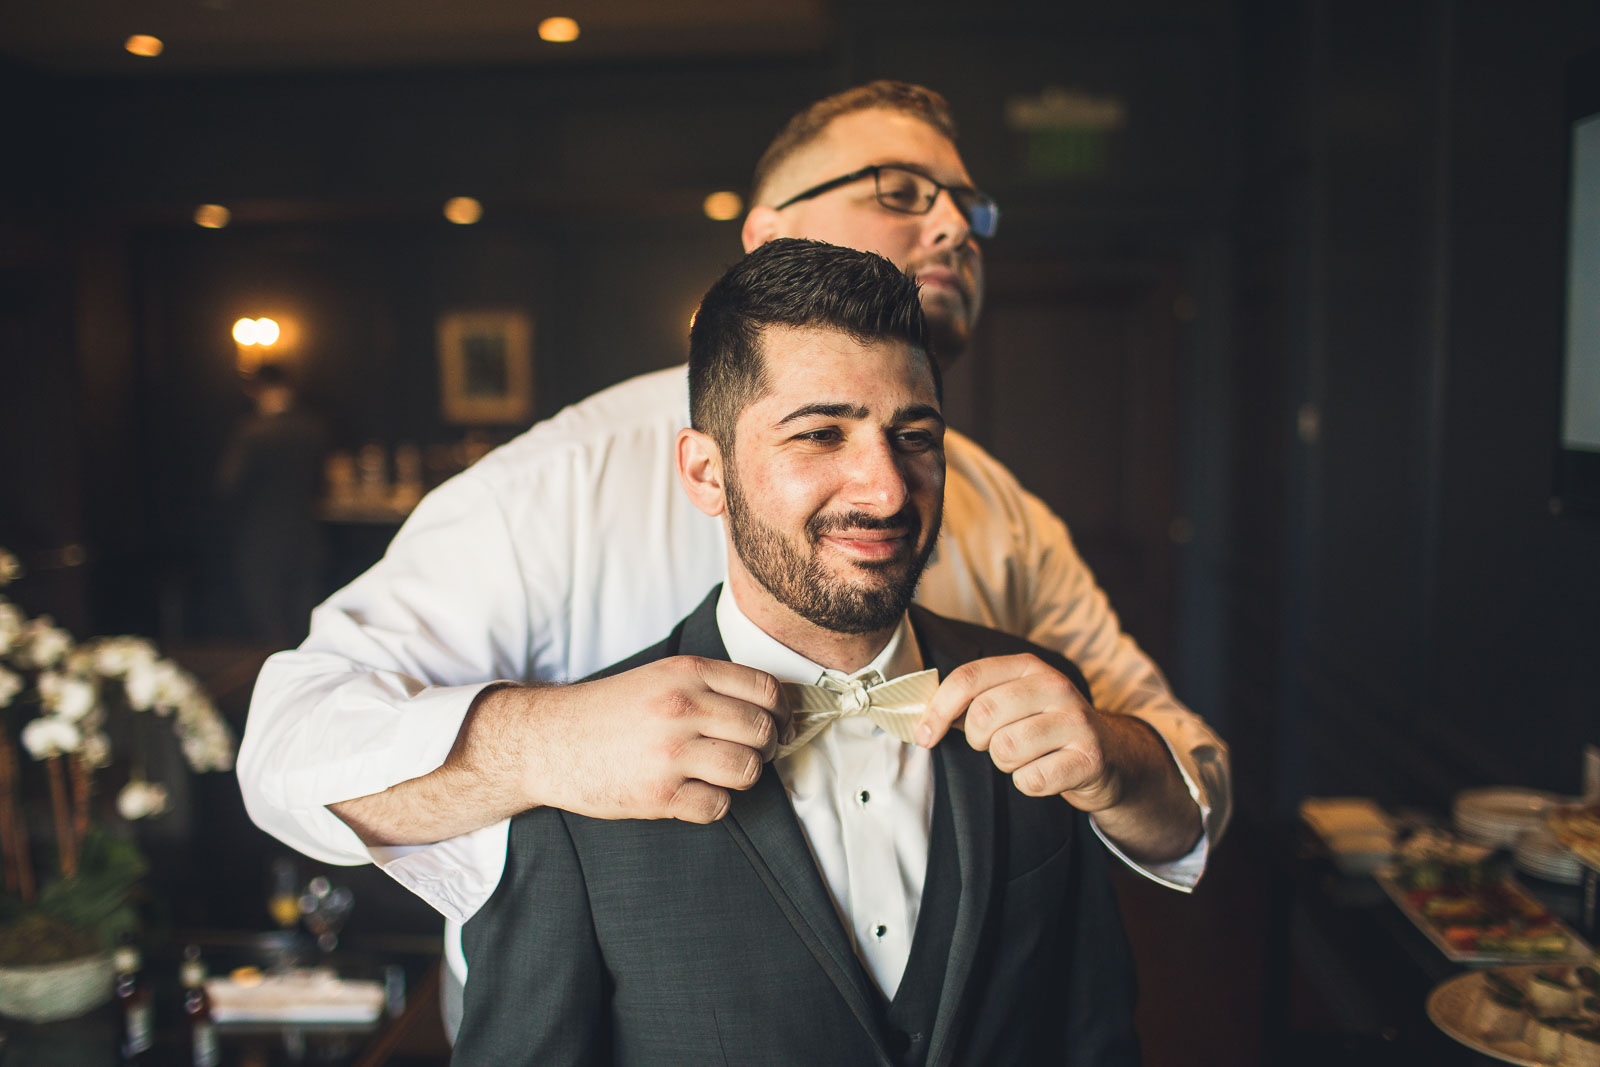 Best man helps adjust bowtie